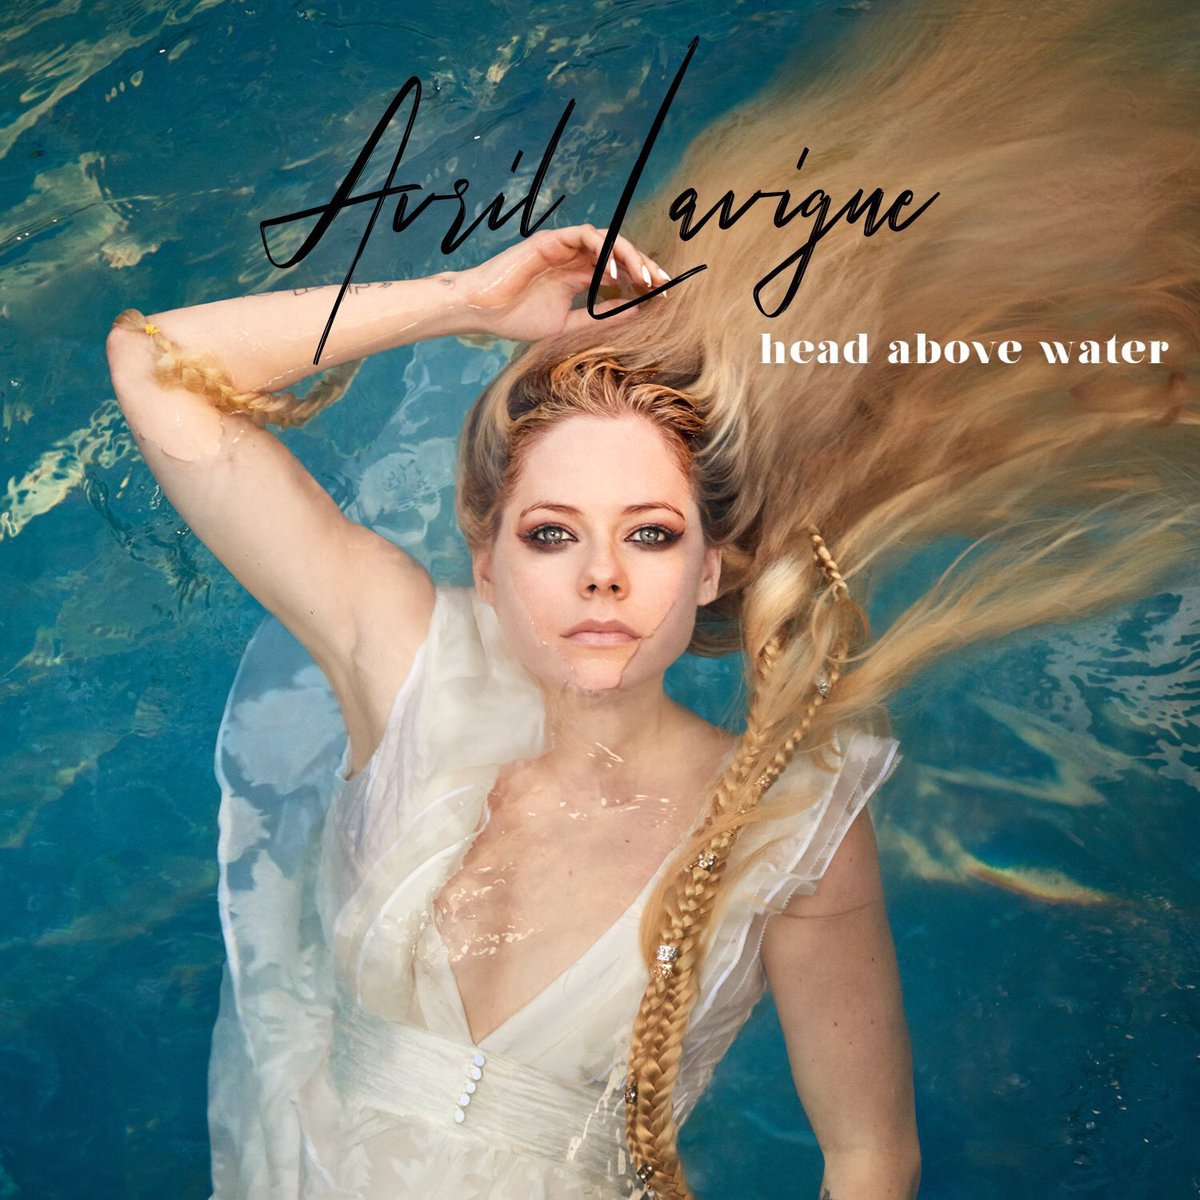 #AvrilLavigne shares cover art of her new single #HeadAboveWater coming out at Noon PST 💙 https://t.co/XNirXCRMz0